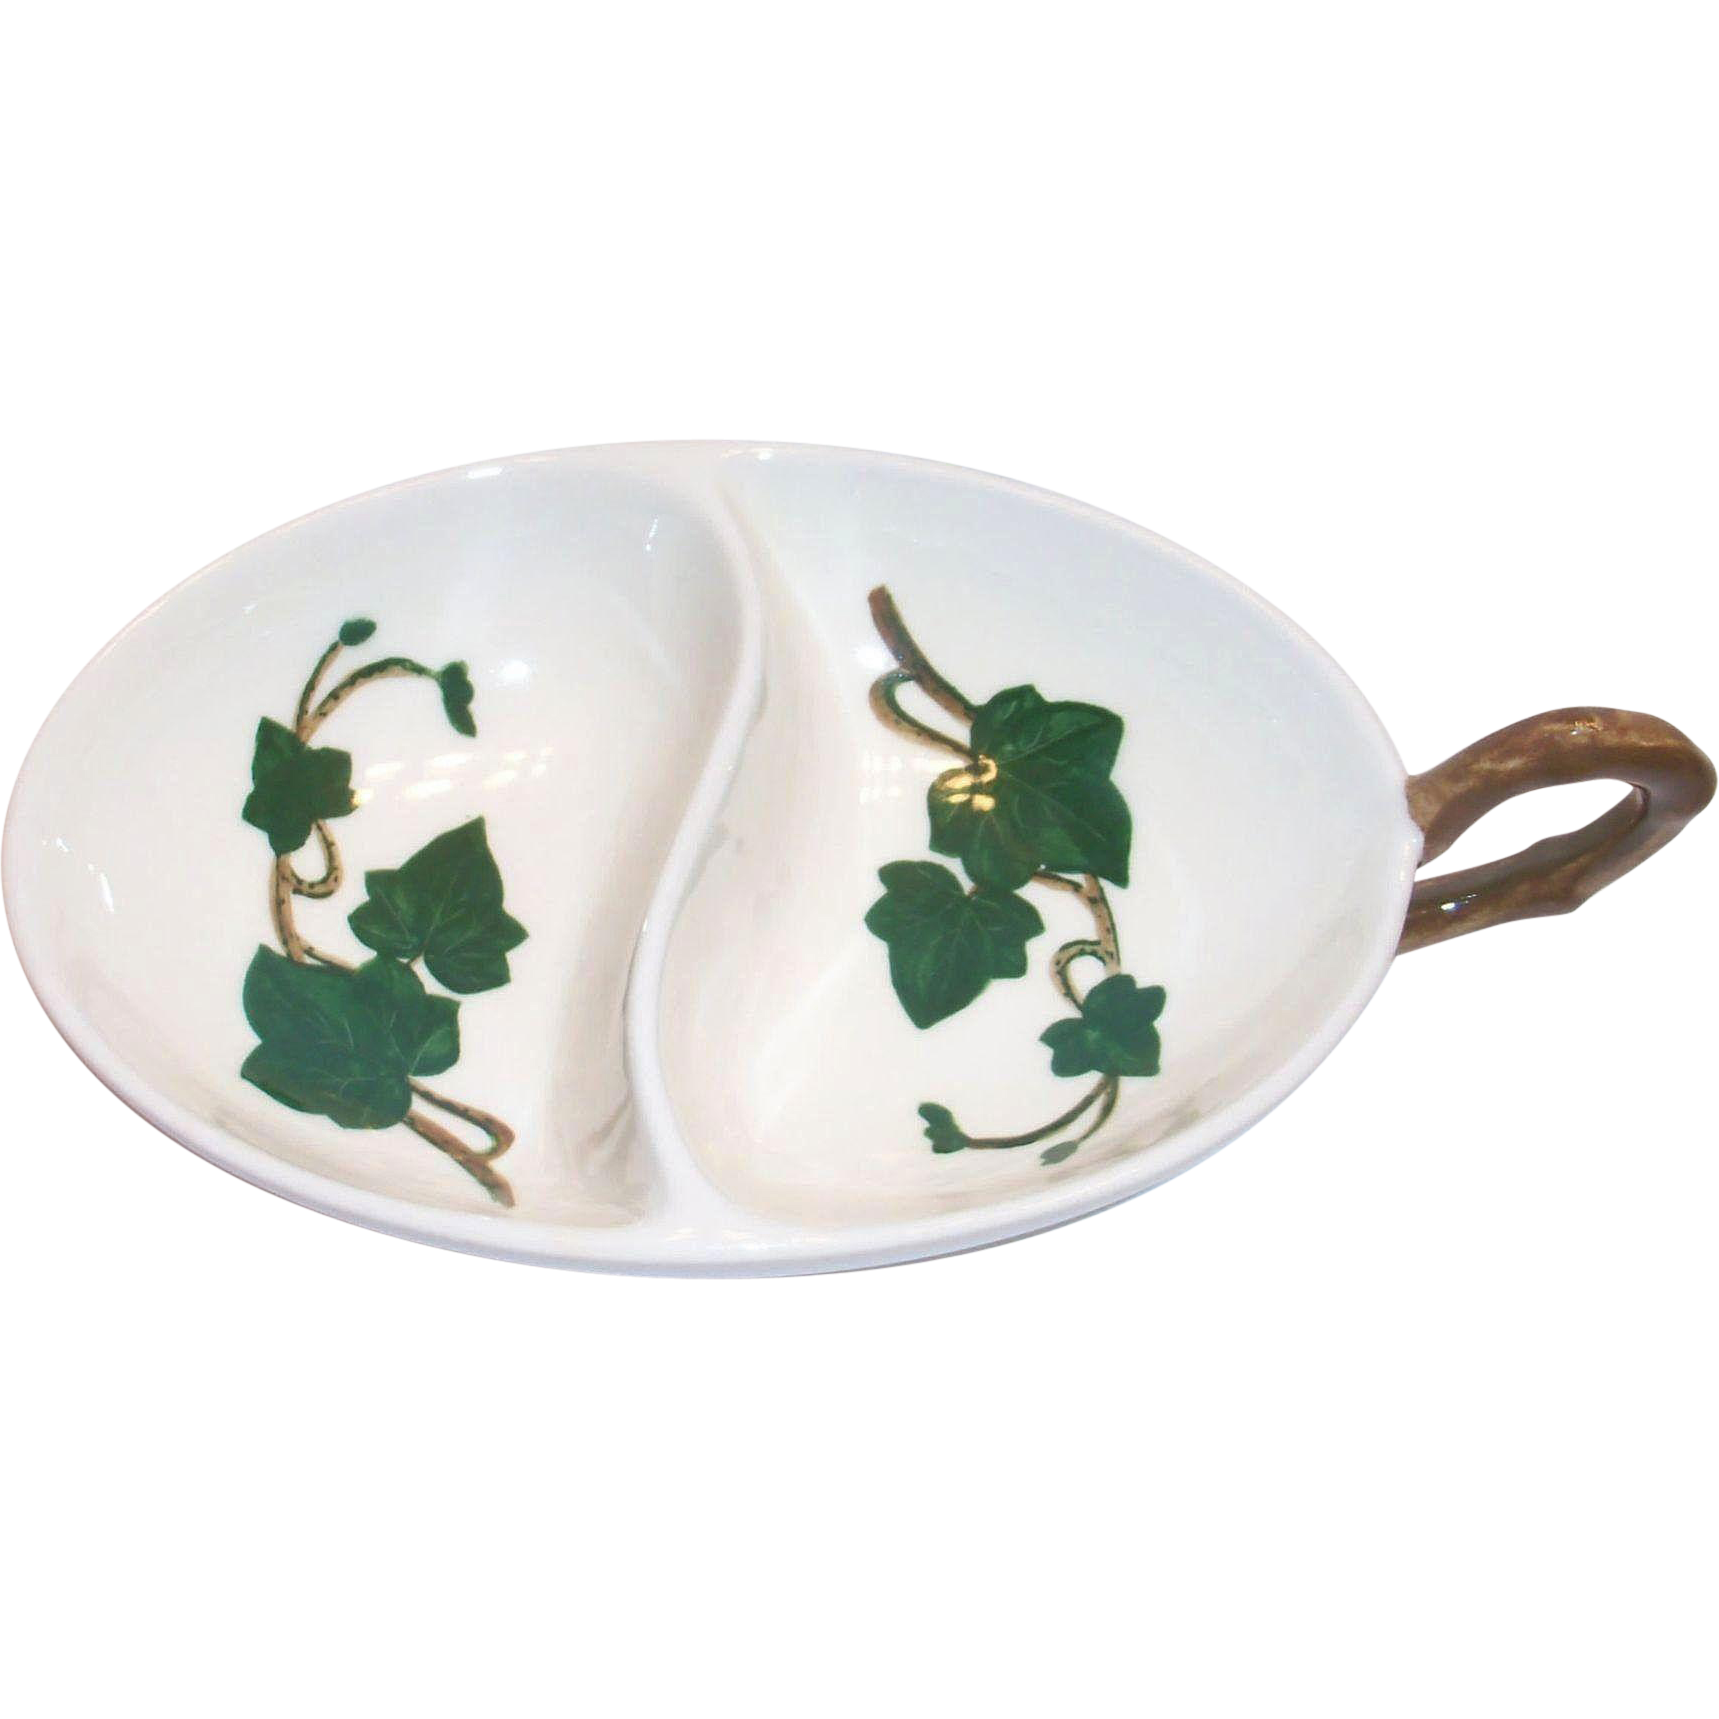 Vintage Metlox Poppytrail Ivy Hand Painted Ivy Design Divided Relish or Nappy Bowl